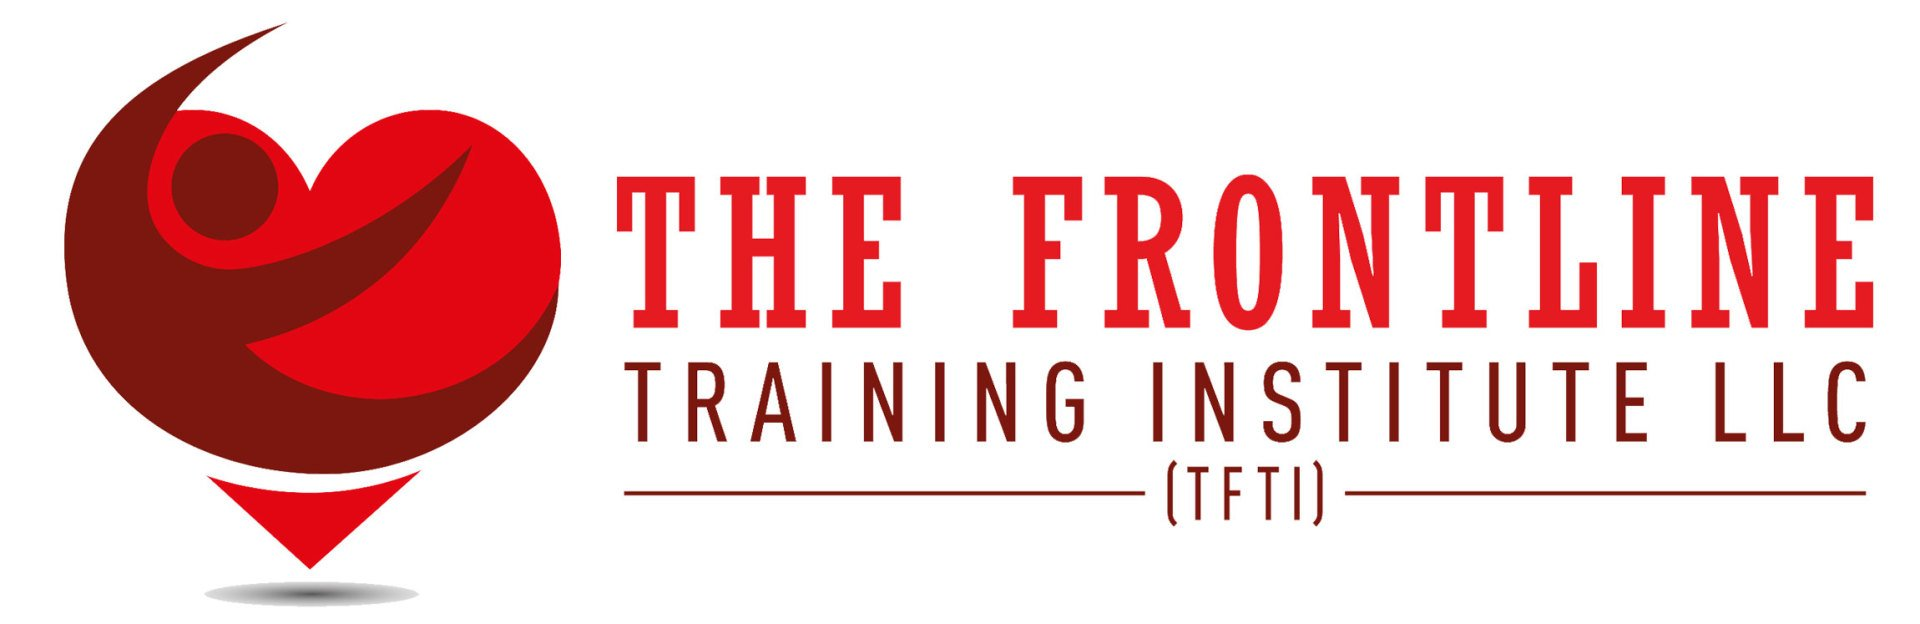 The Frontline Training Institute Cpr First Aid Bls Classes